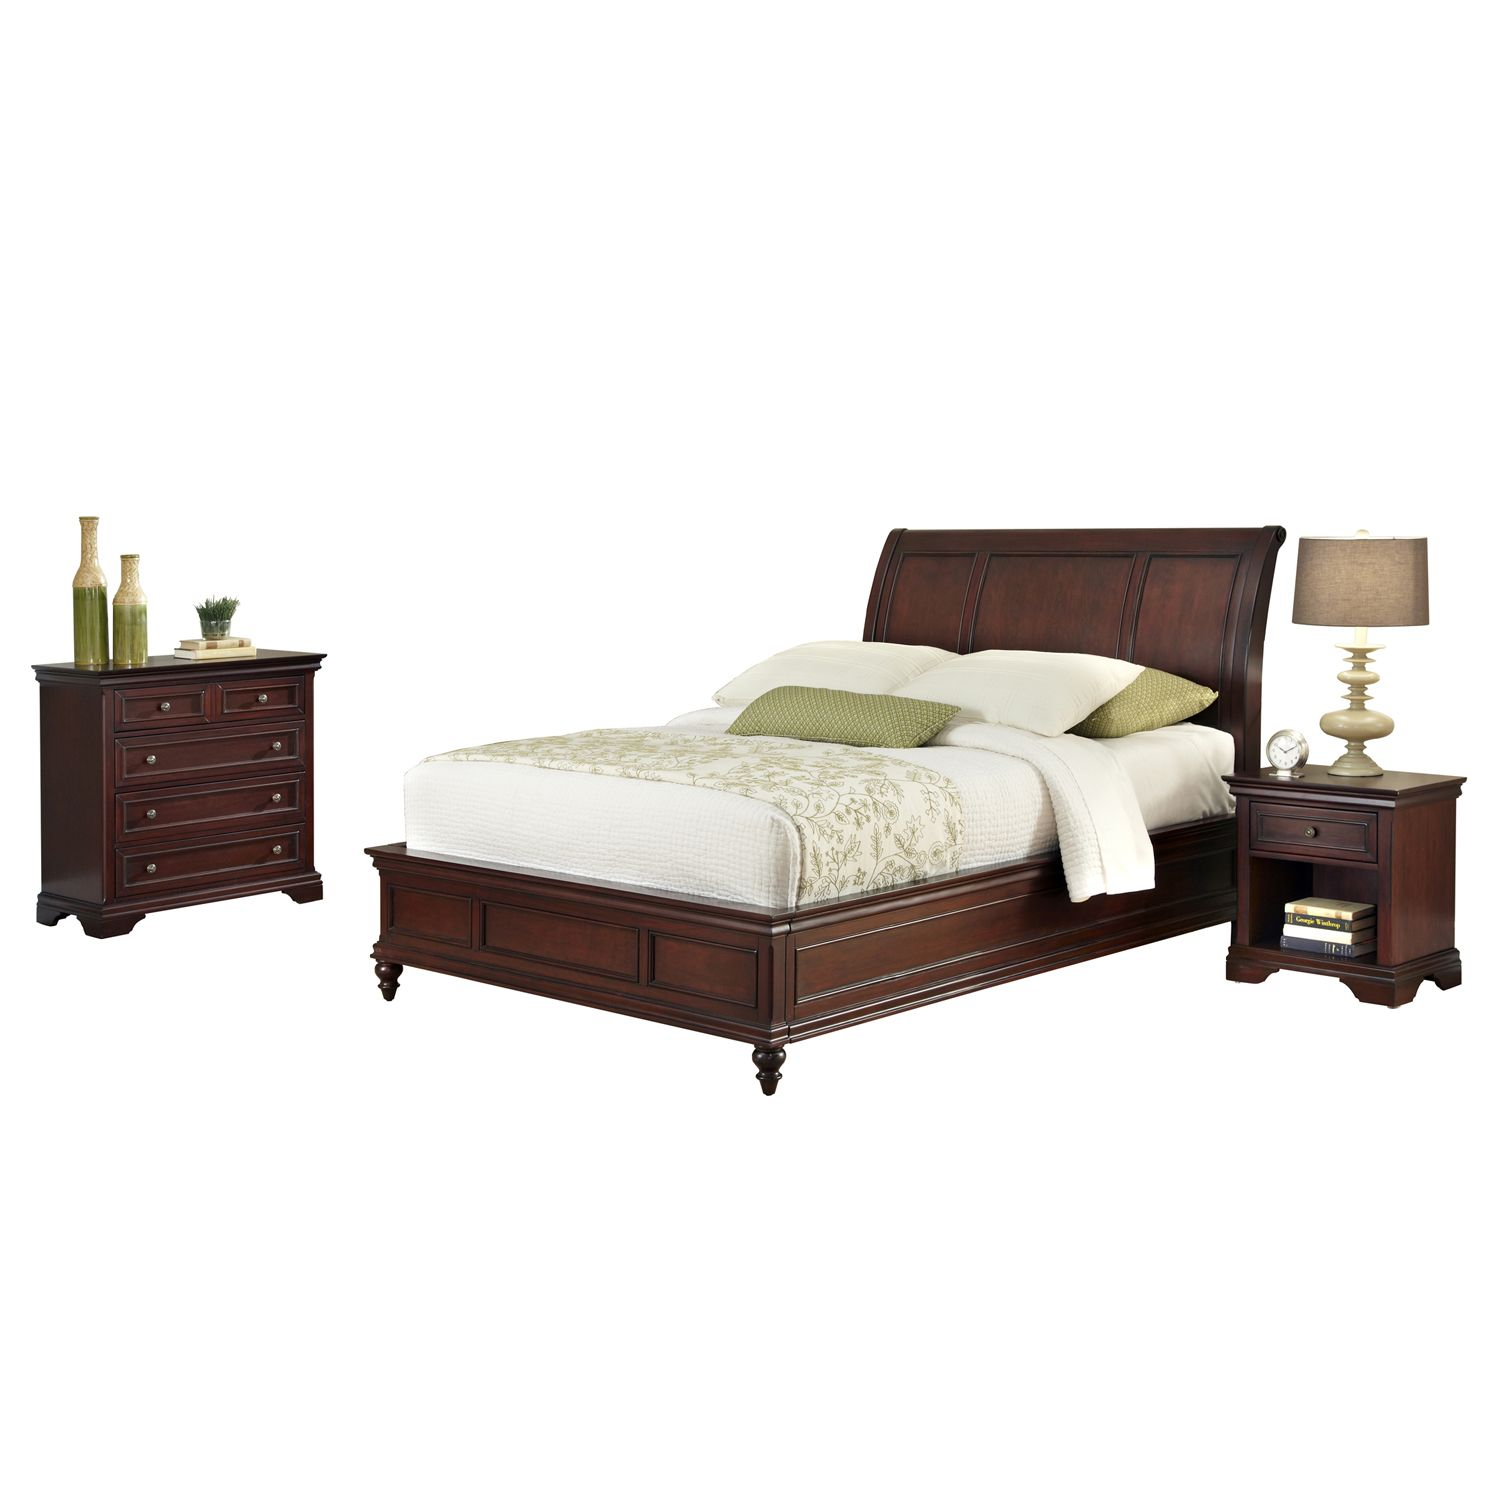 Nice Queen Headboard Drawer Chest u Nightstand Set